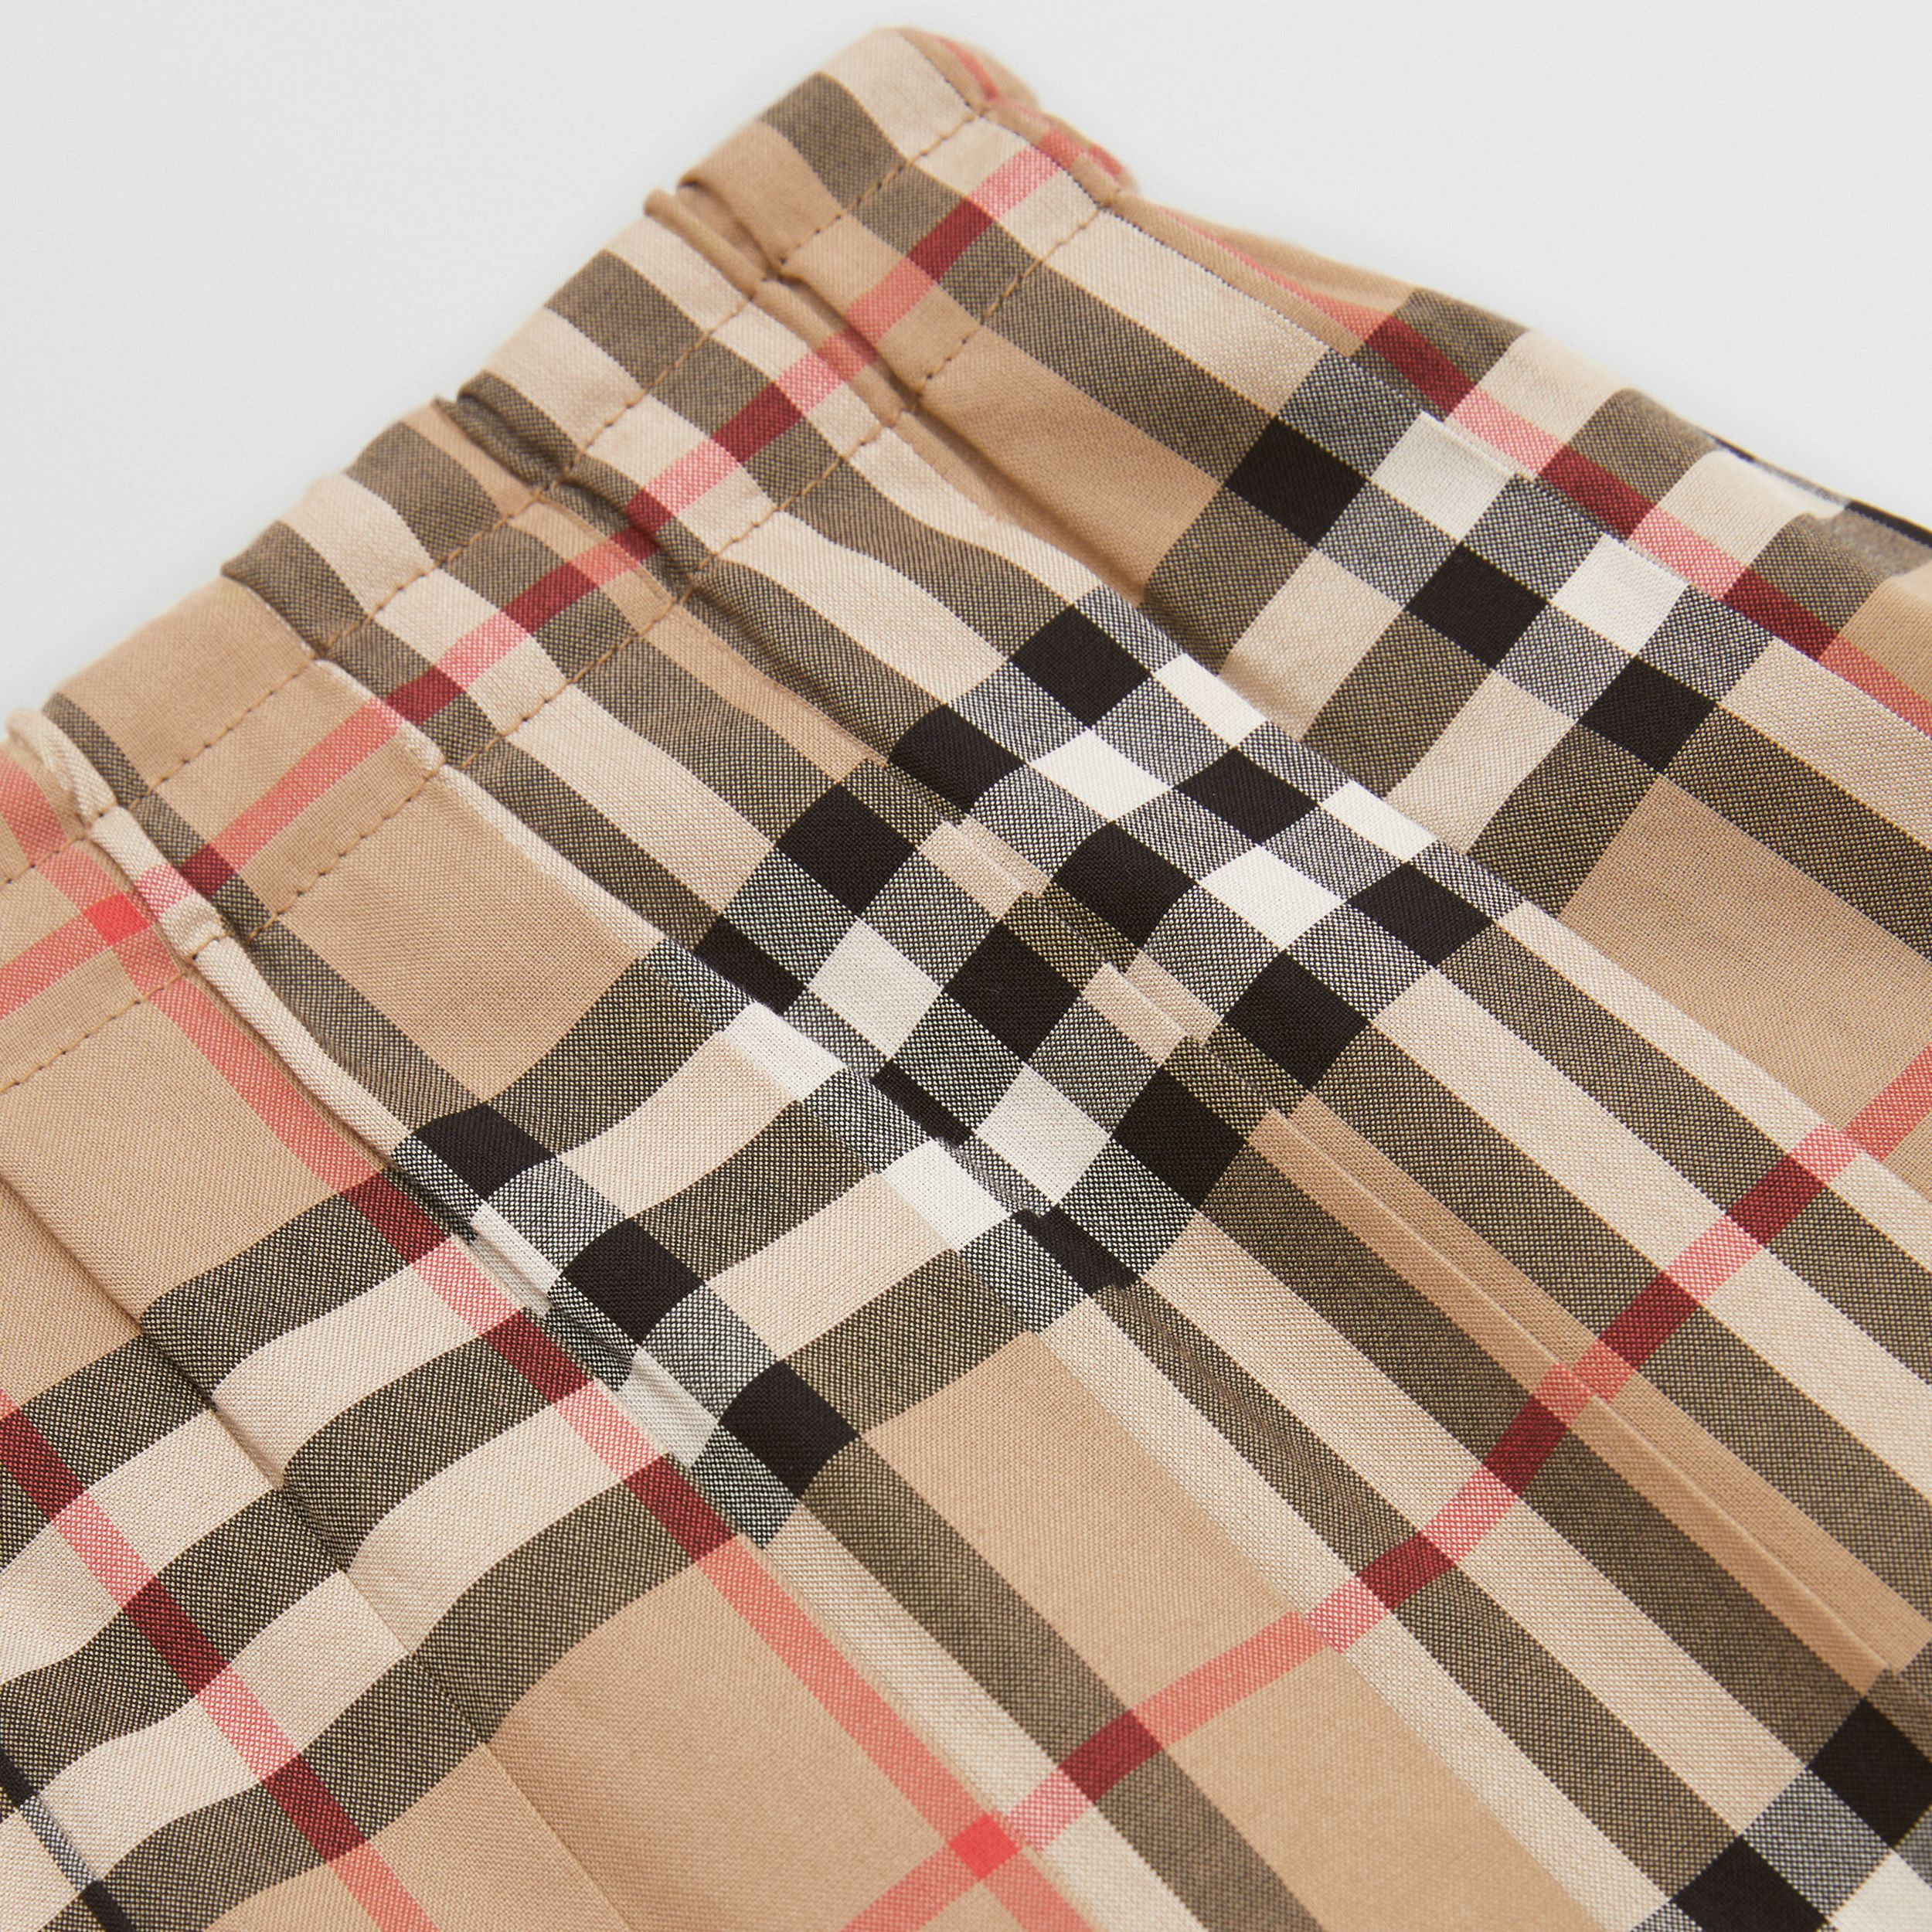 Vintage Check Pleated Skirt in Archive Beige | Burberry - 2